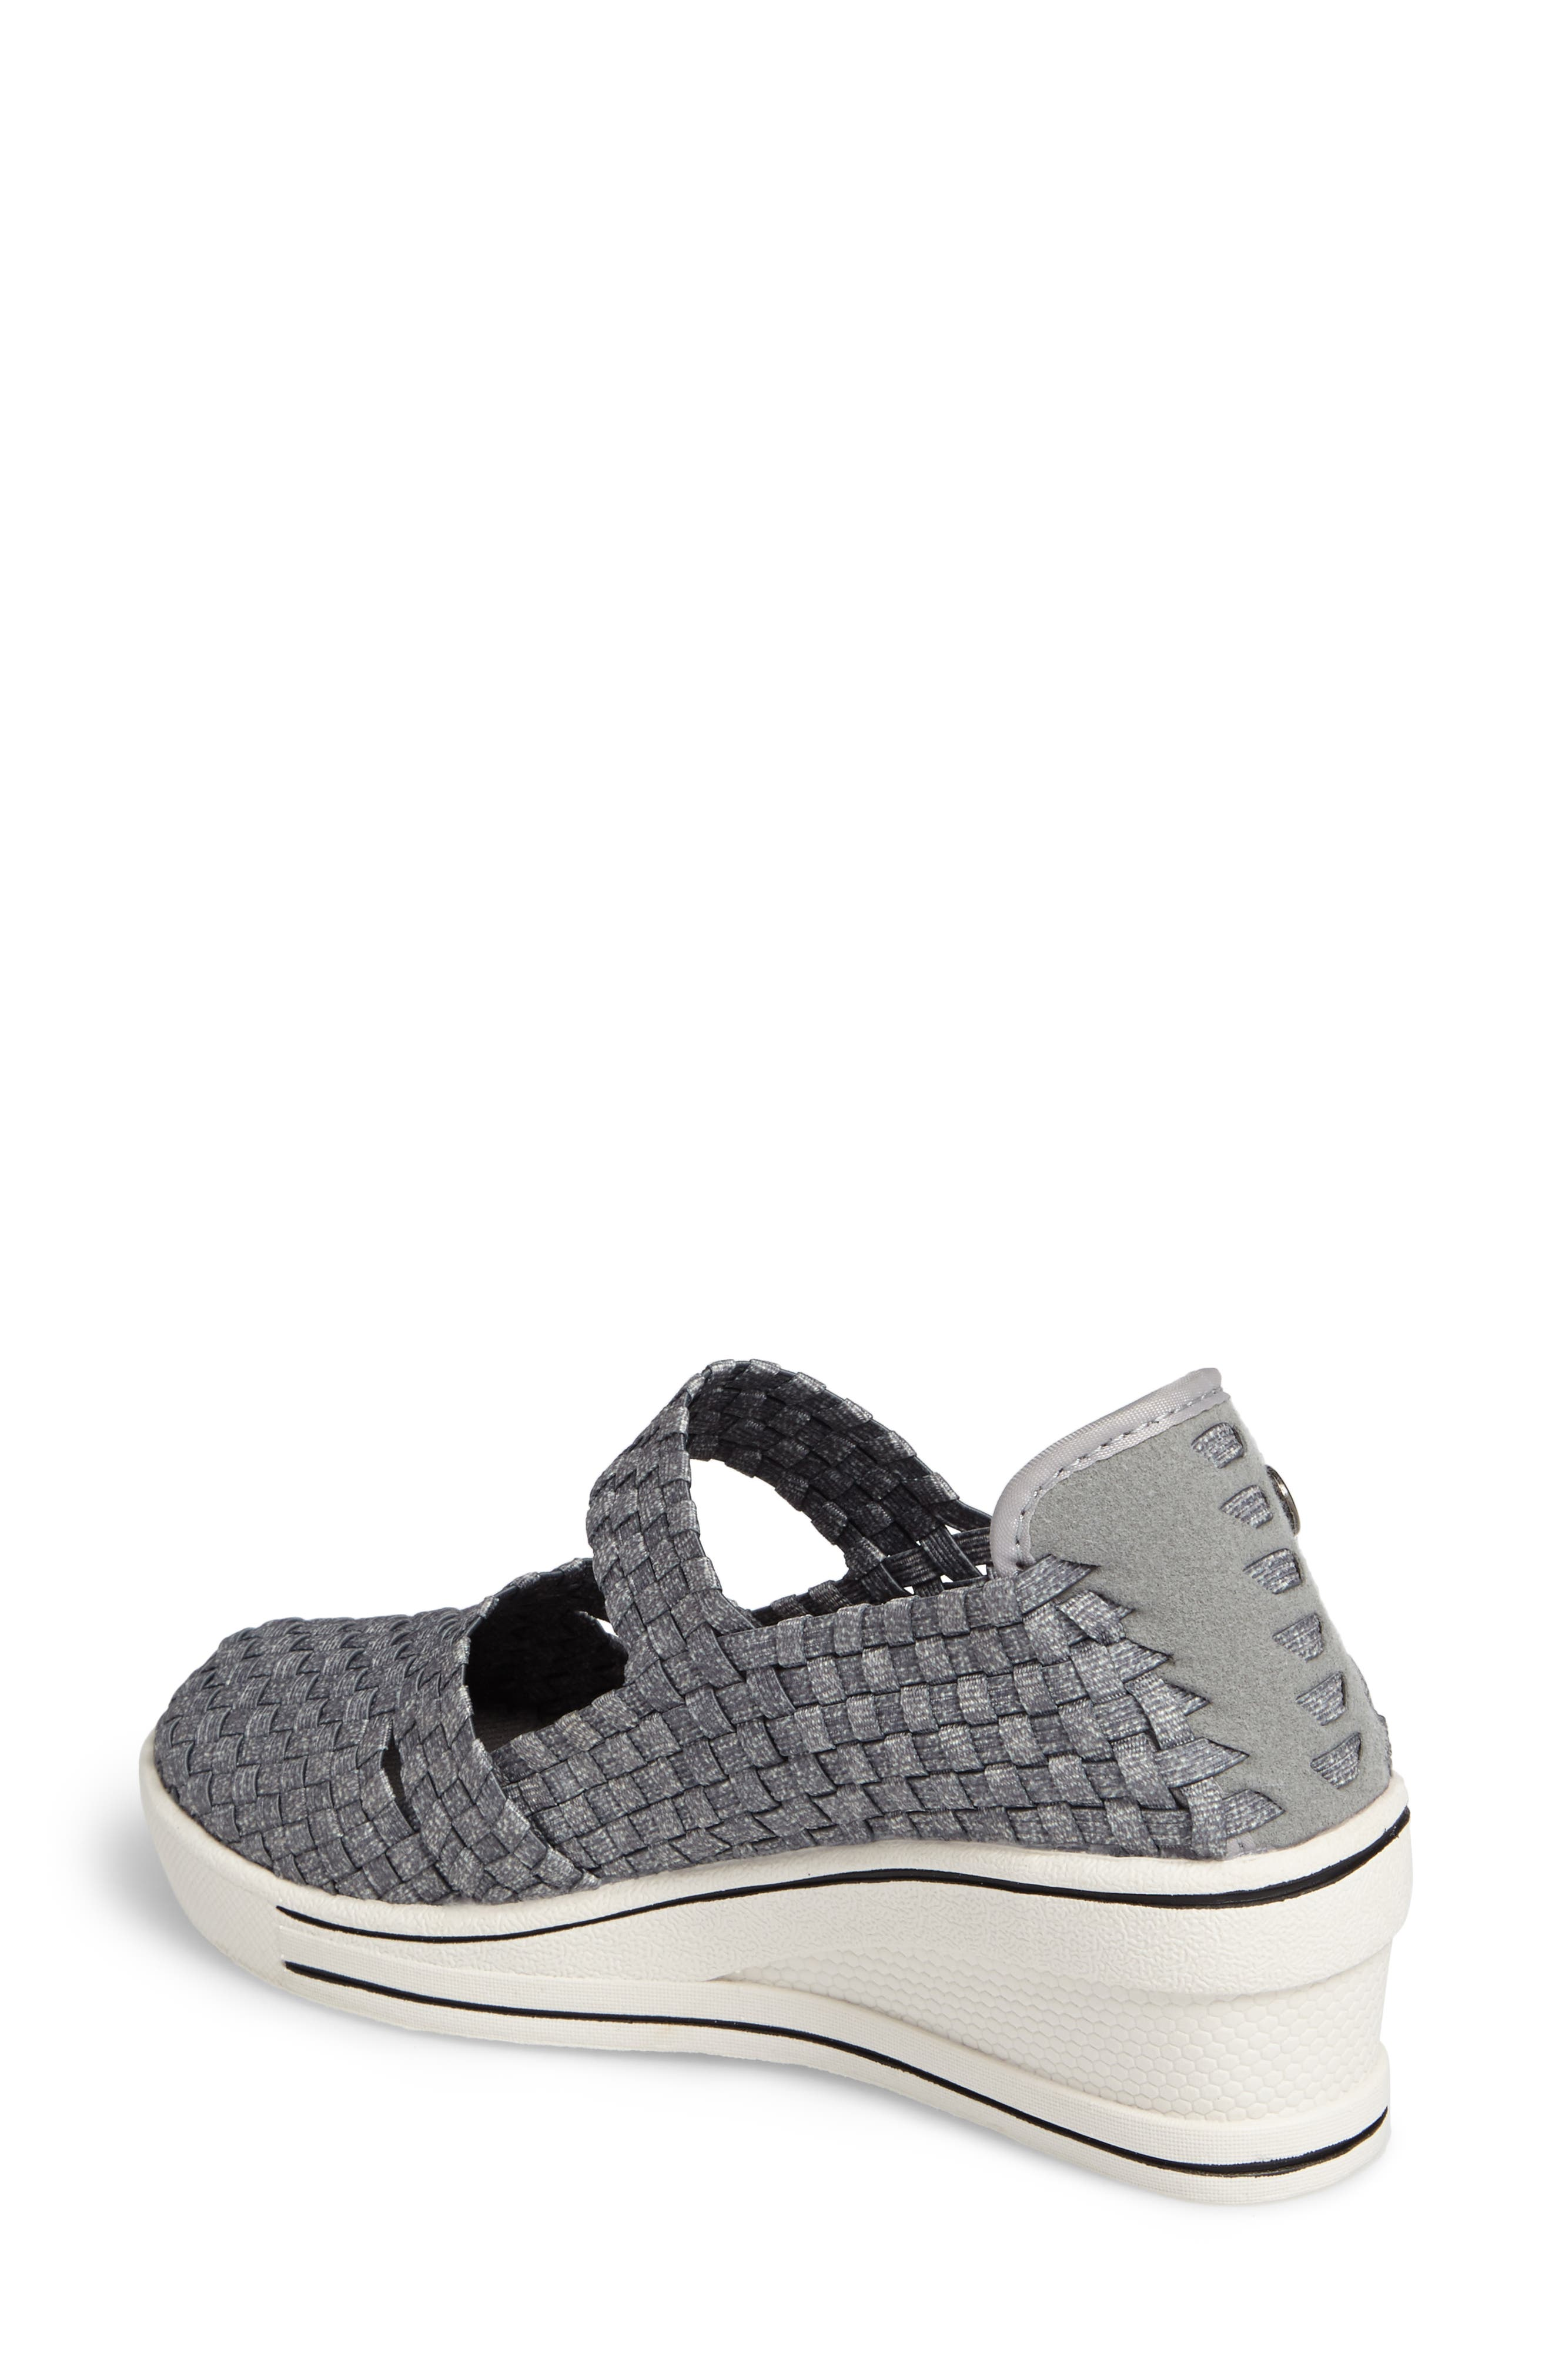 Frontier Woven Mary Jane Wedge,                             Alternate thumbnail 2, color,                             HEATHER GREY FABRIC